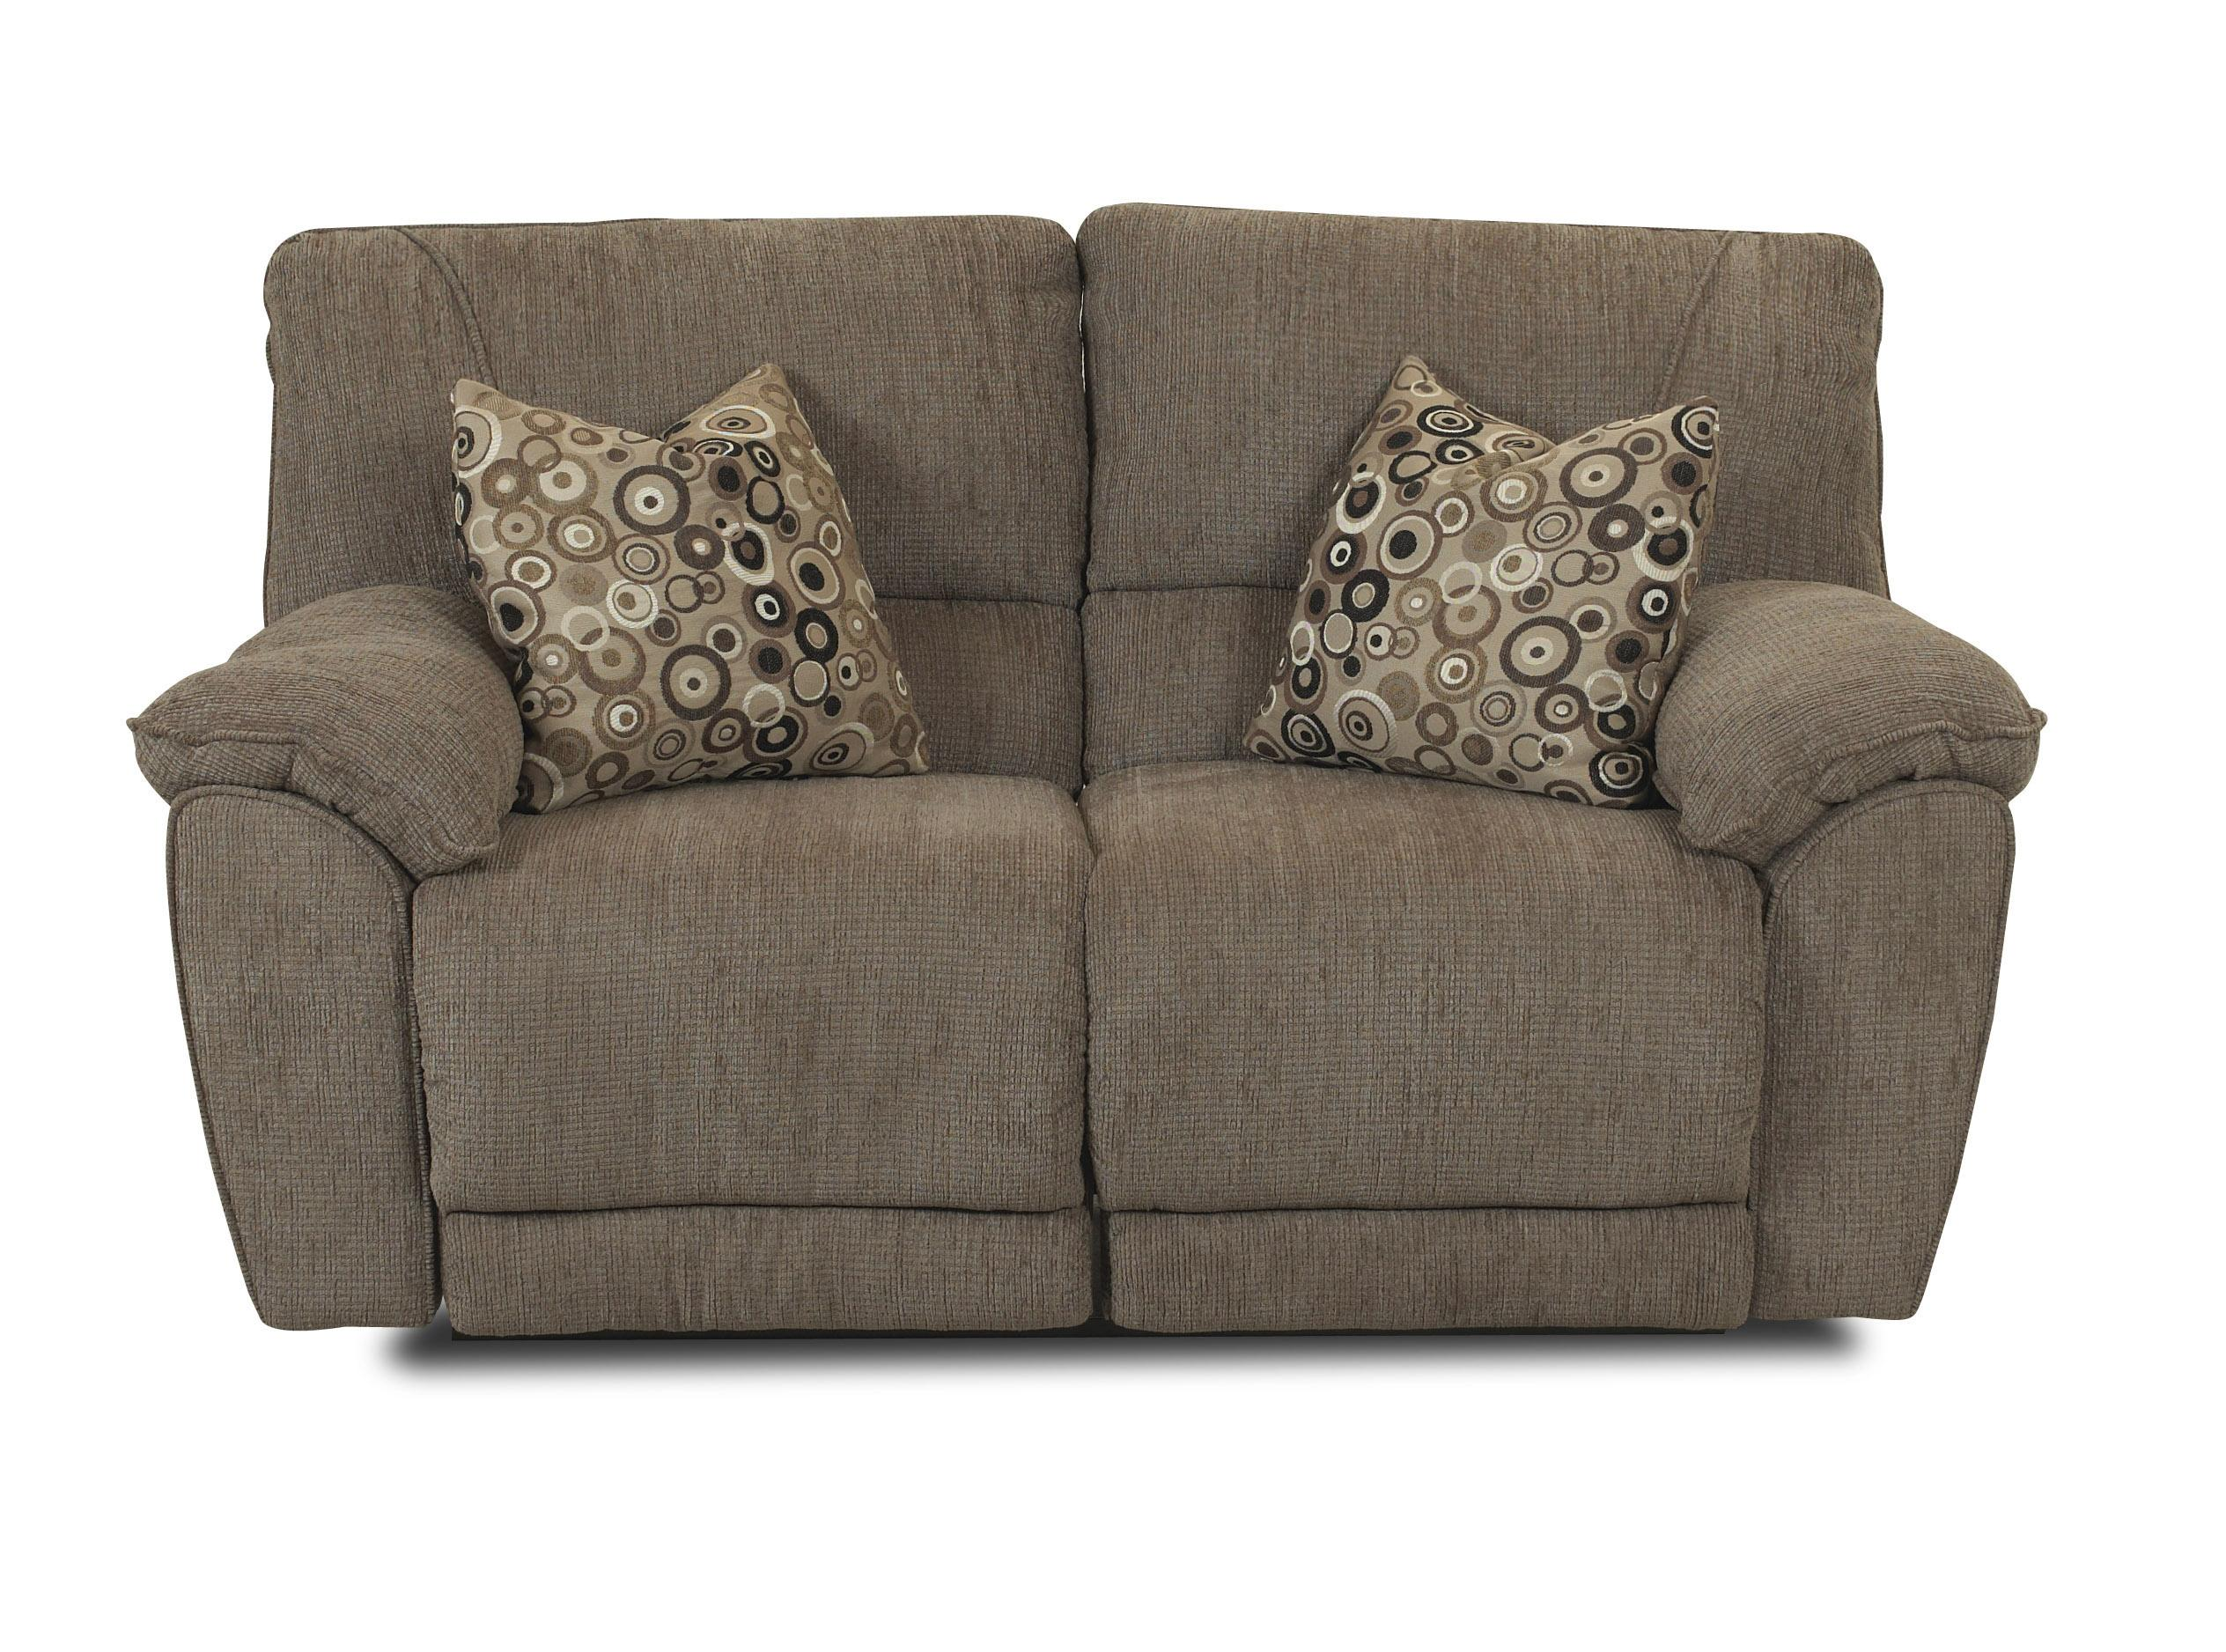 Klaussner Laredo  Power Reclining Loveseat with Pillows - Item Number: 57903P PWRLS